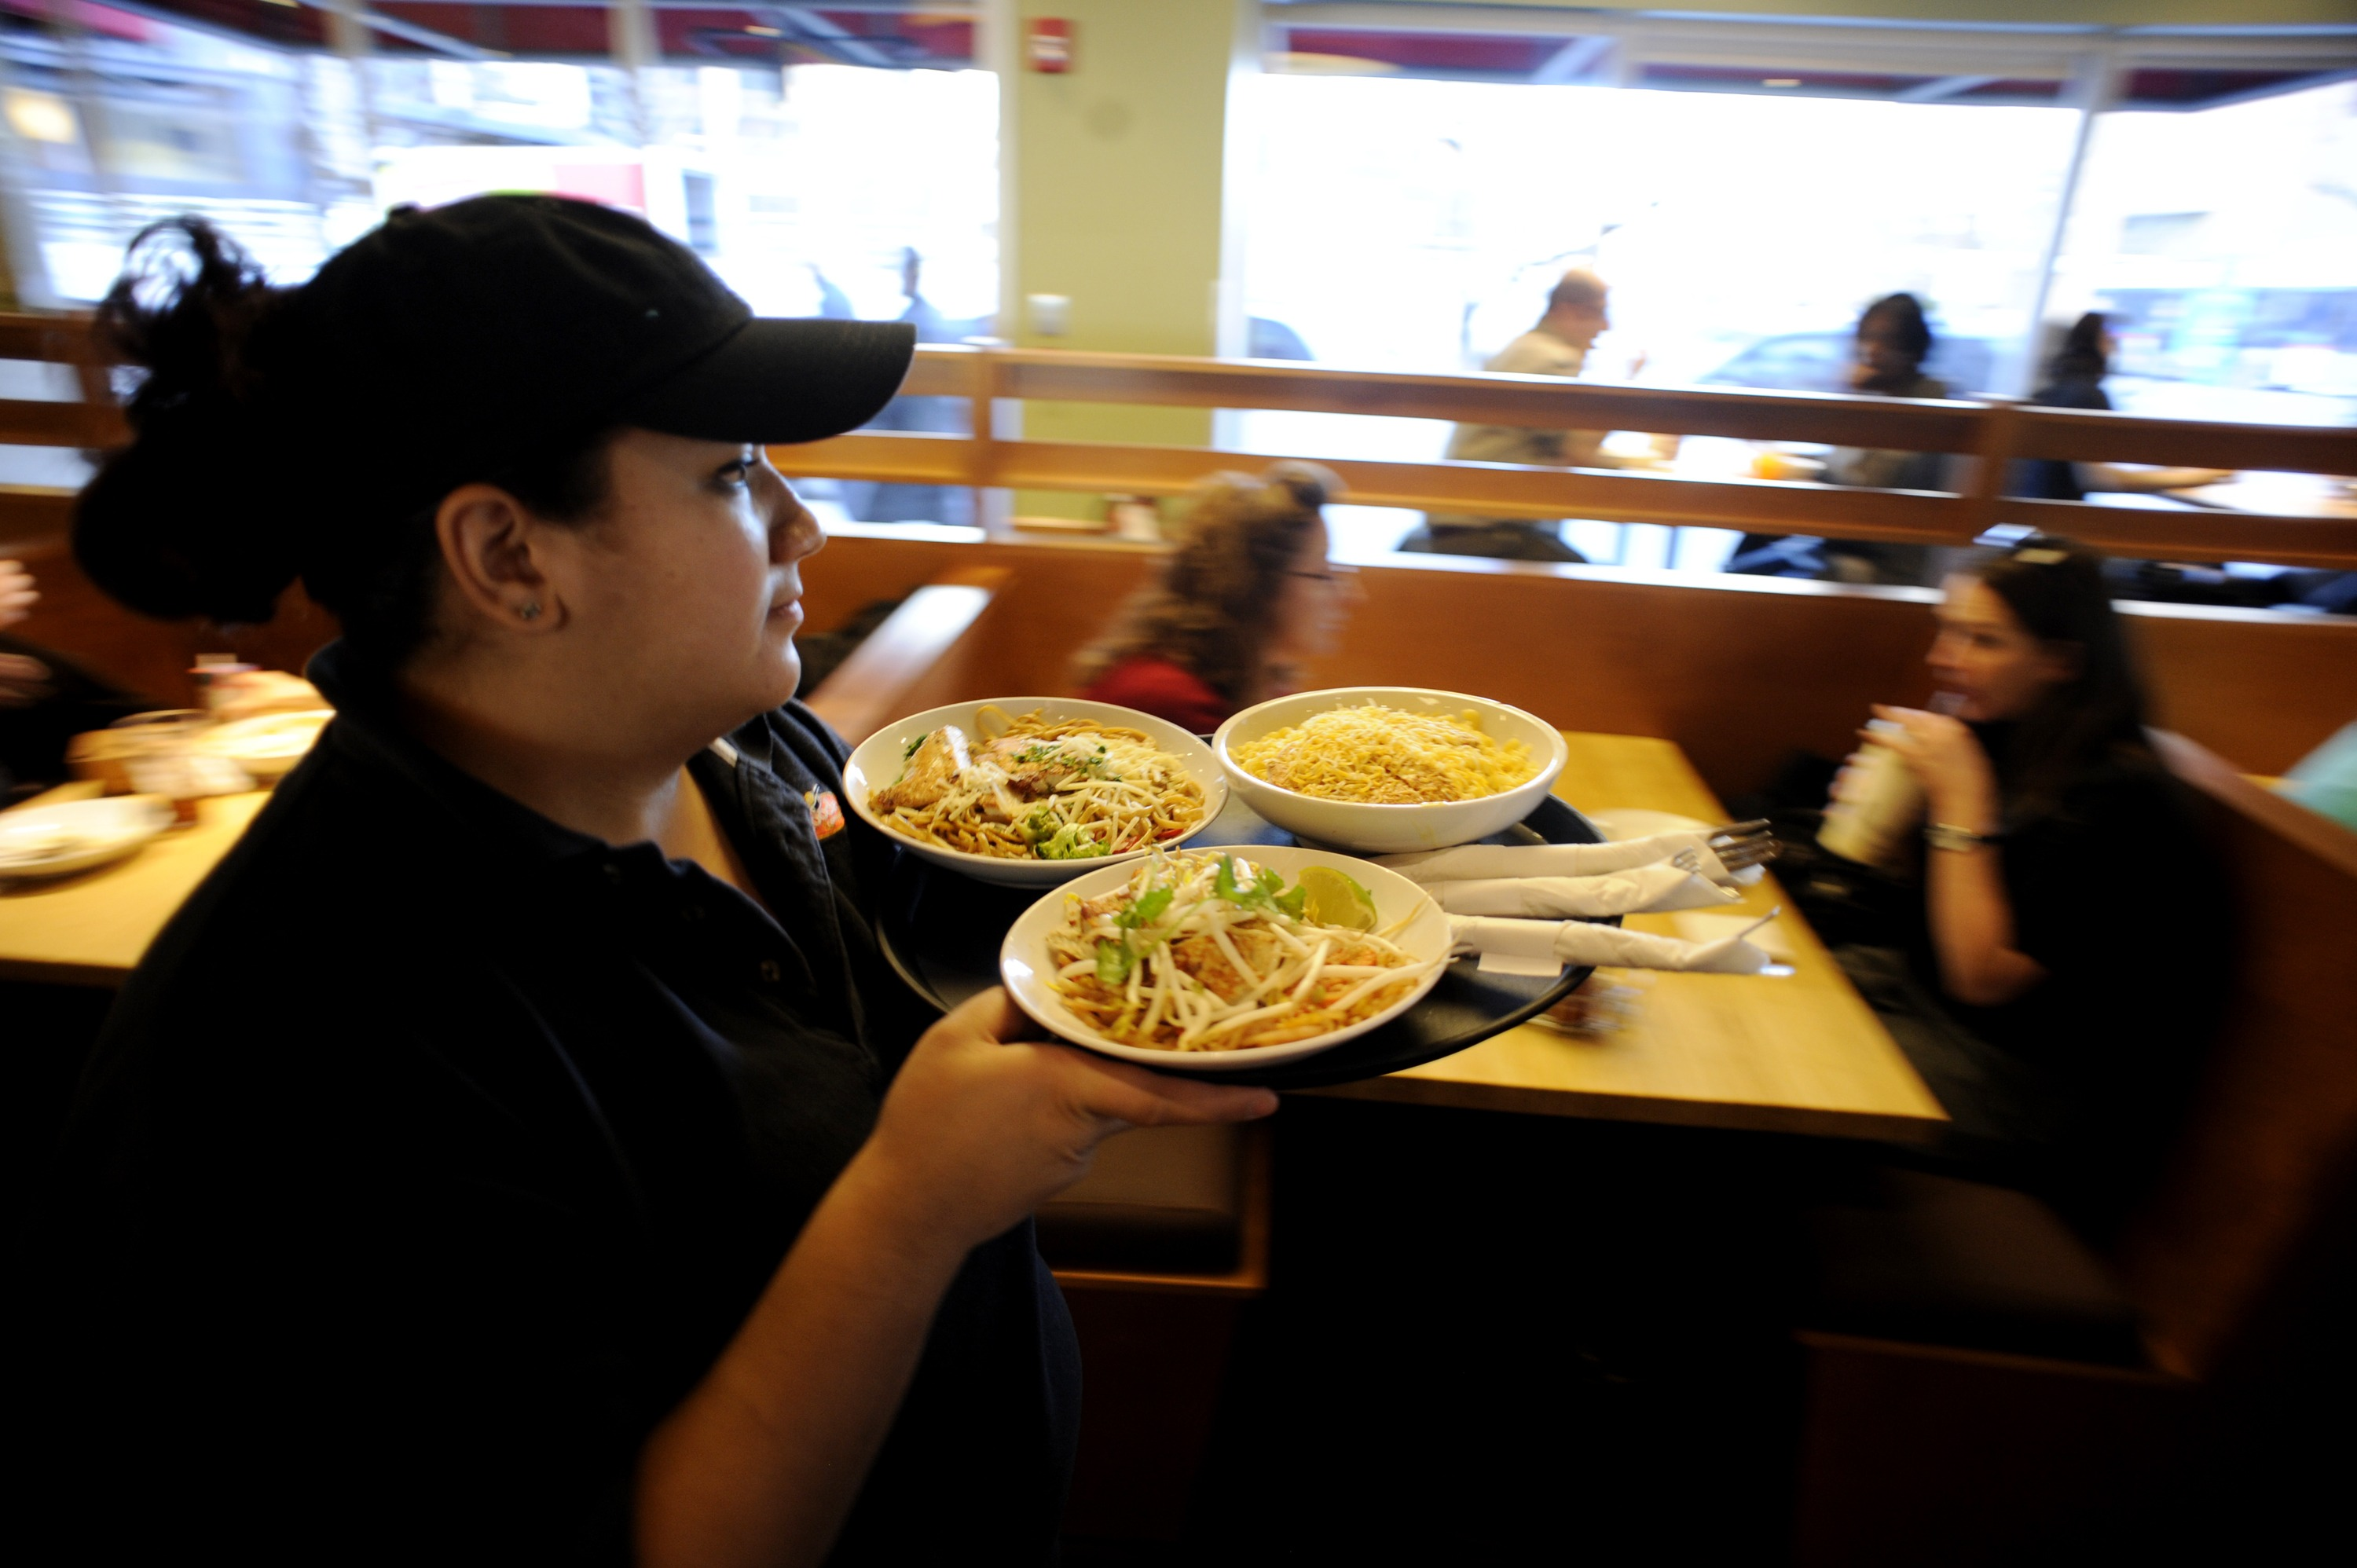 """Debbie Teran carries a platter of food to patrons on Monday, December 27, 2010 at Noodles and Company in downtown Denver. Location general manager Ryan Quinn said the restaurant serves between 400-500 customers during the weekday lunch rush. """"(Our) lunch"""